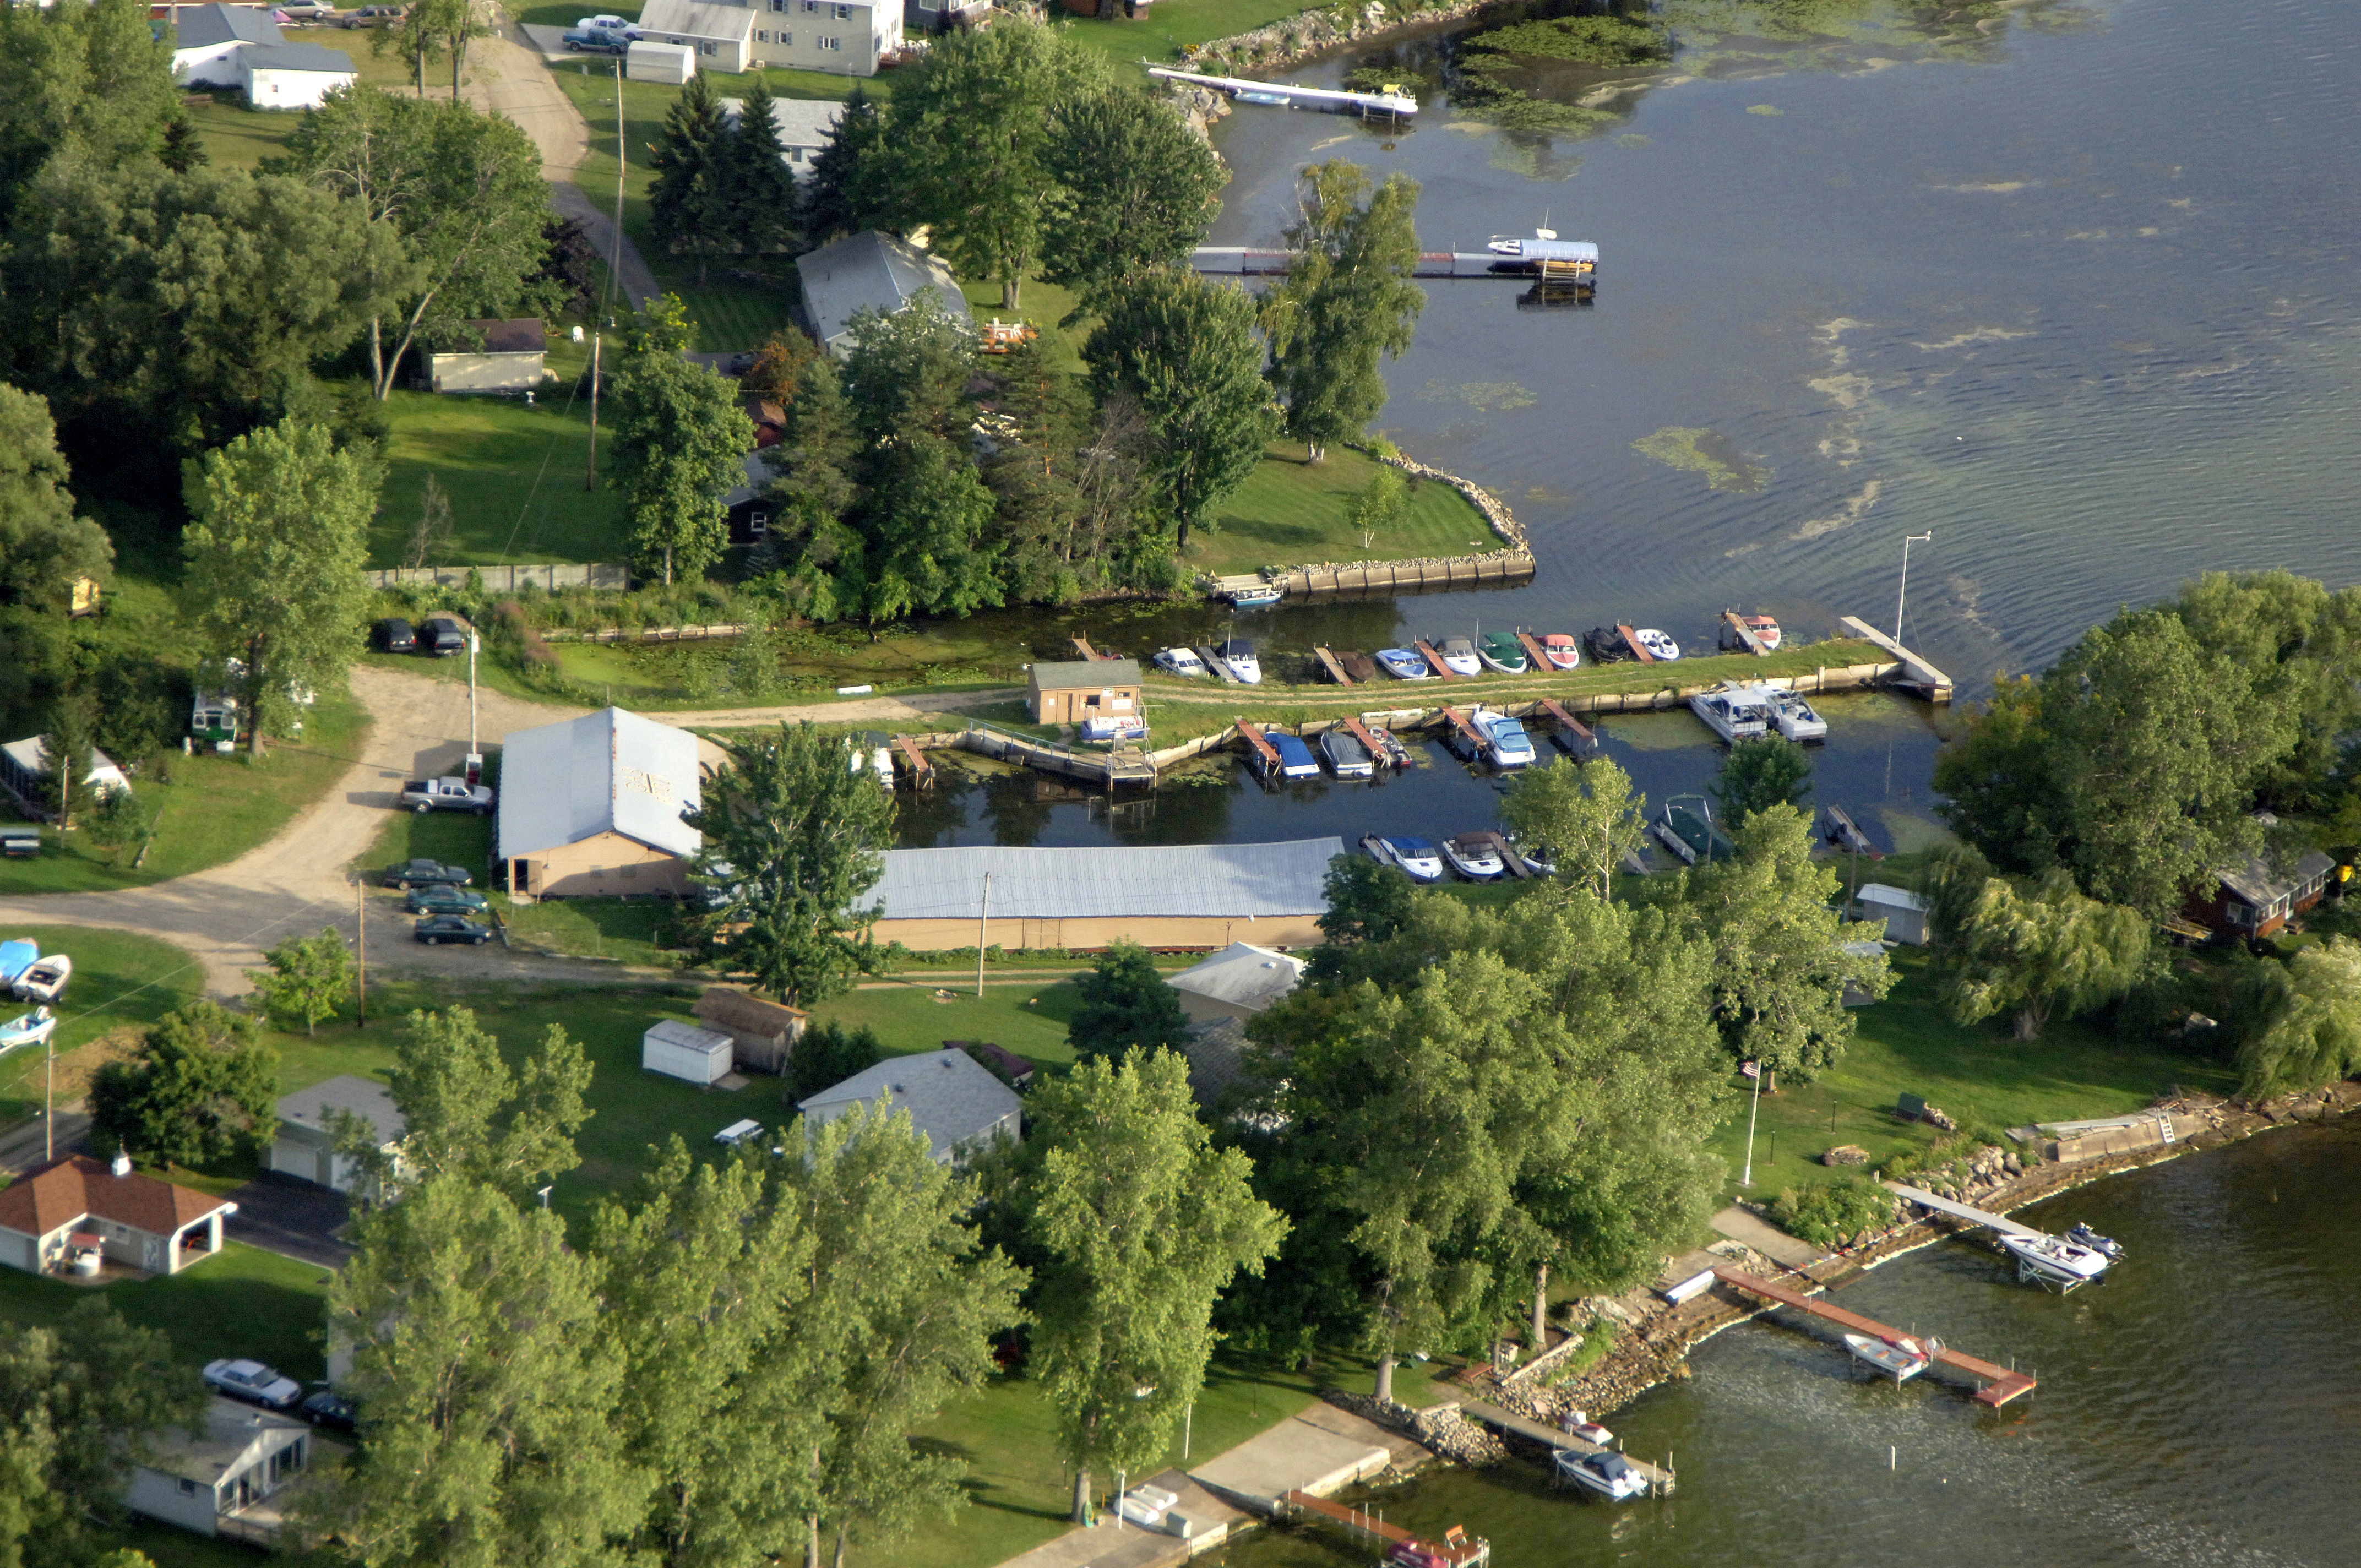 Seber shores marina in sandy creek ny united states for Sandy creek